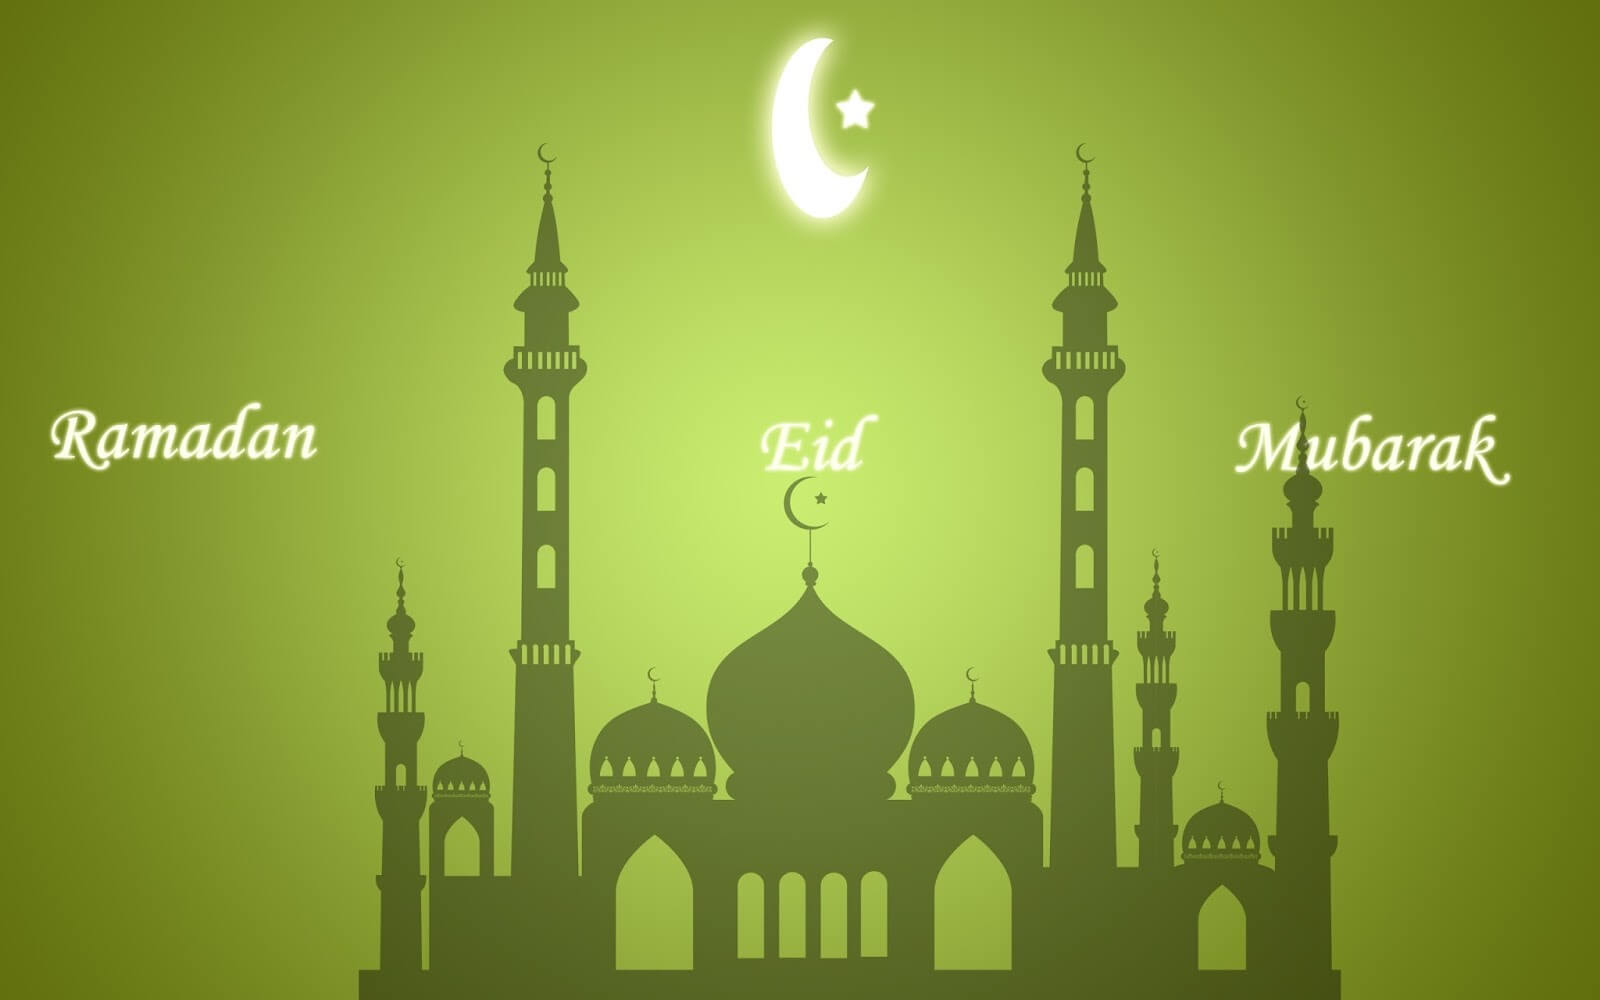 Hd wallpaper ramzan mubarak - Ramzan Eid Mubarak Wishes Wallpaper